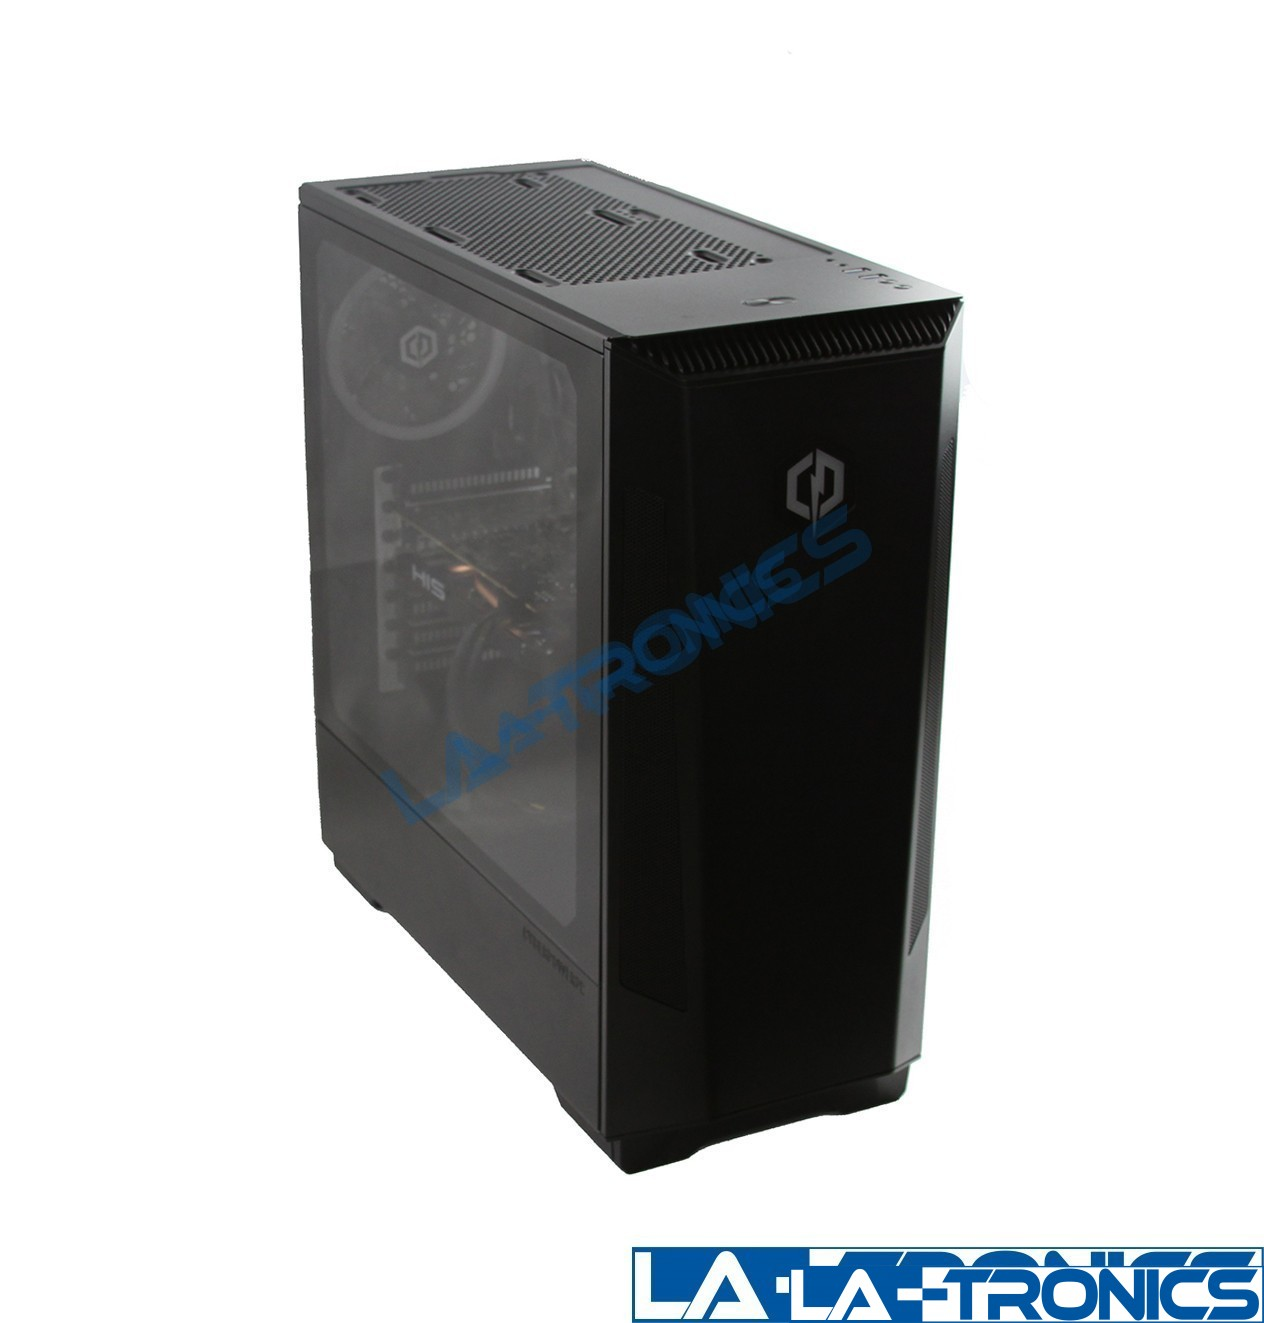 CyberPowerPC Gaming Desktop PC AMD 3.5GH Radeon RX 570 240GB SSD 1TB HDD 8GB RAM